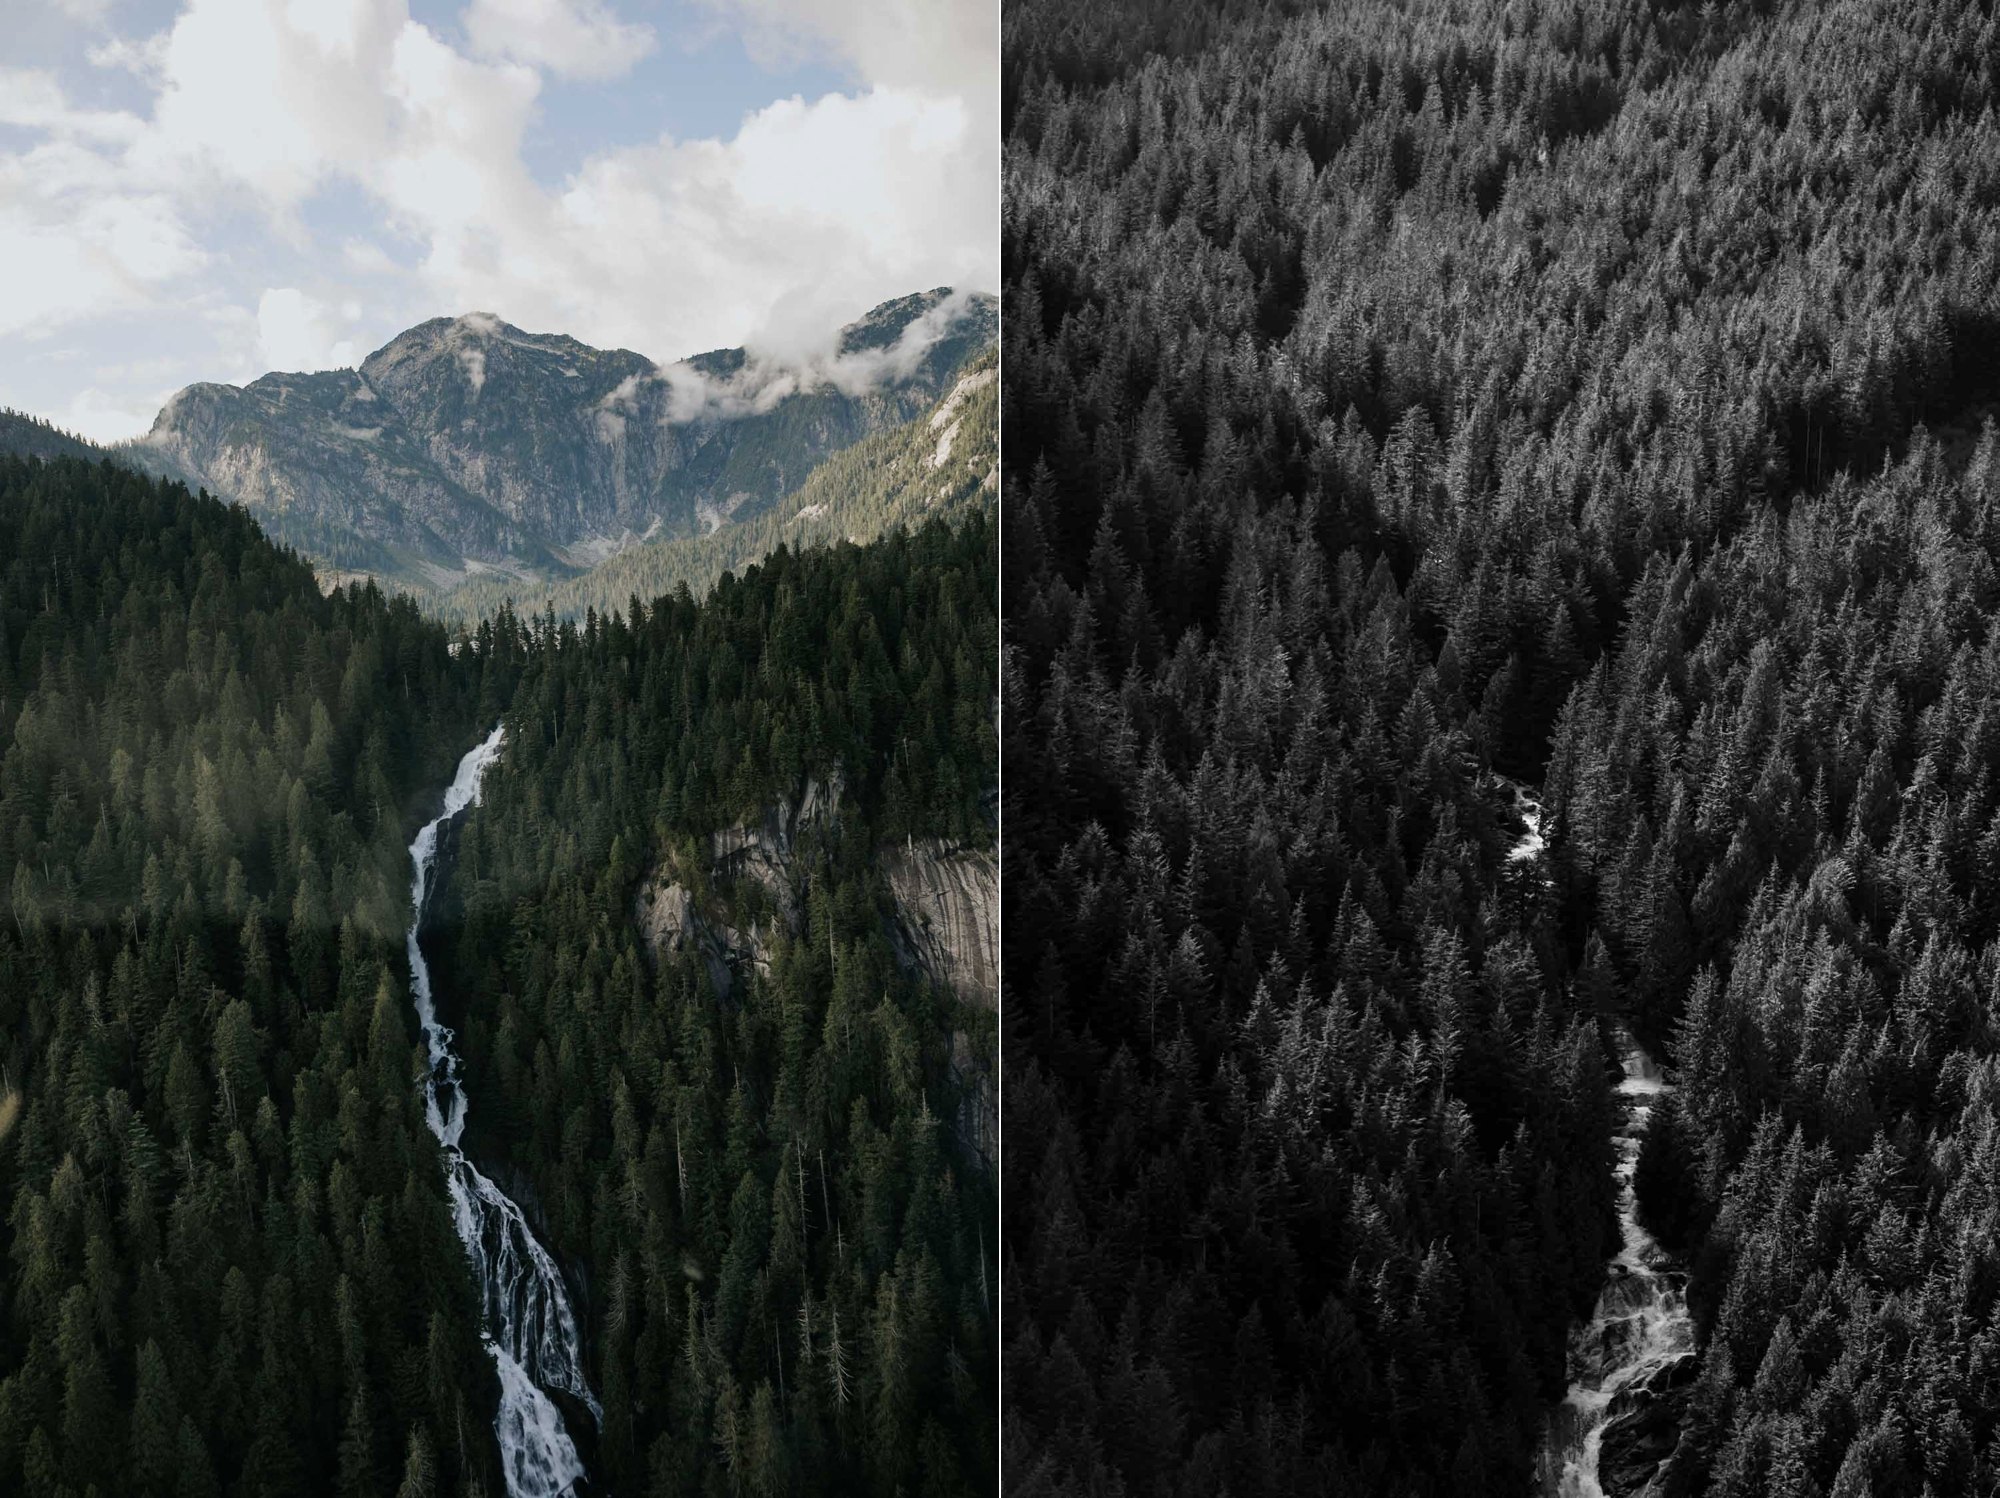 Incredible breathtaking views of mountains, forests, peaks and waterfalls taken from SKY helicopter elopement ride